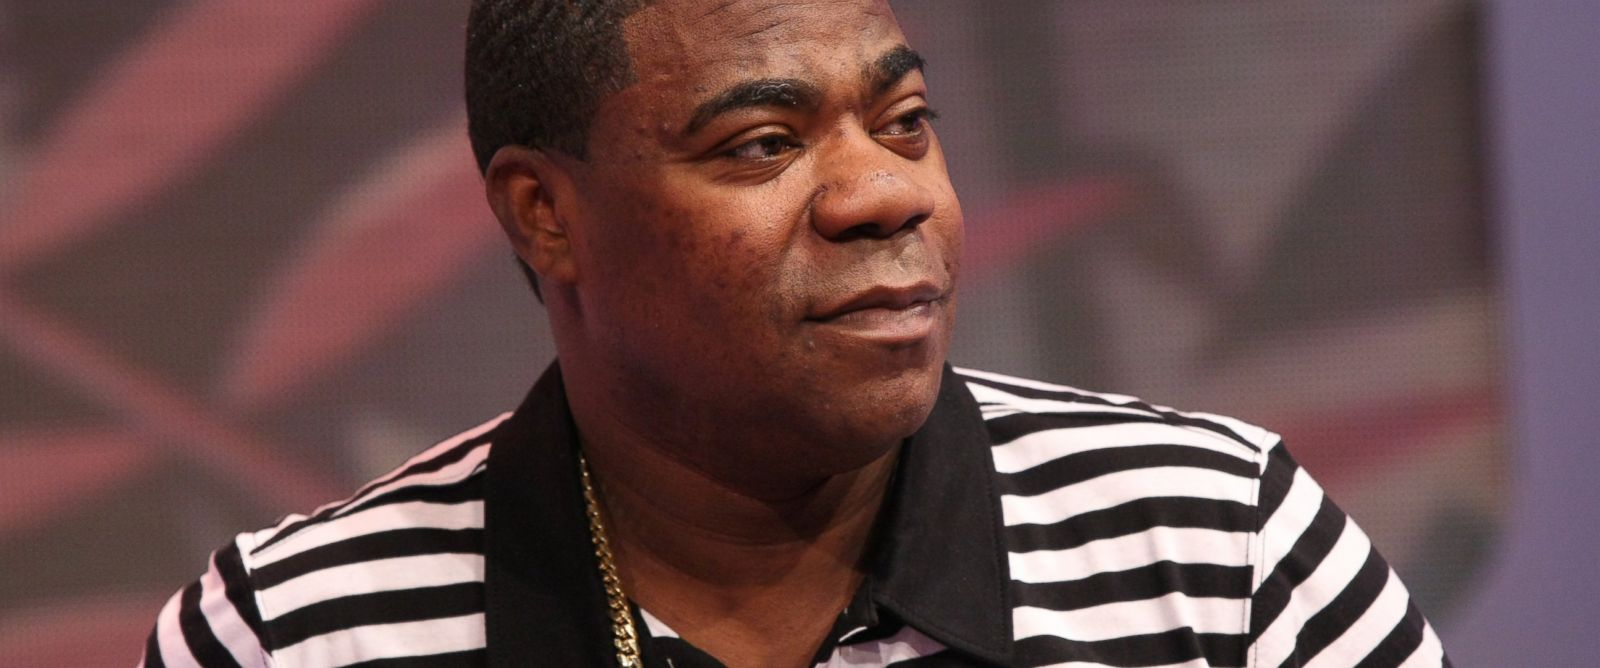 tracy morgan filmography